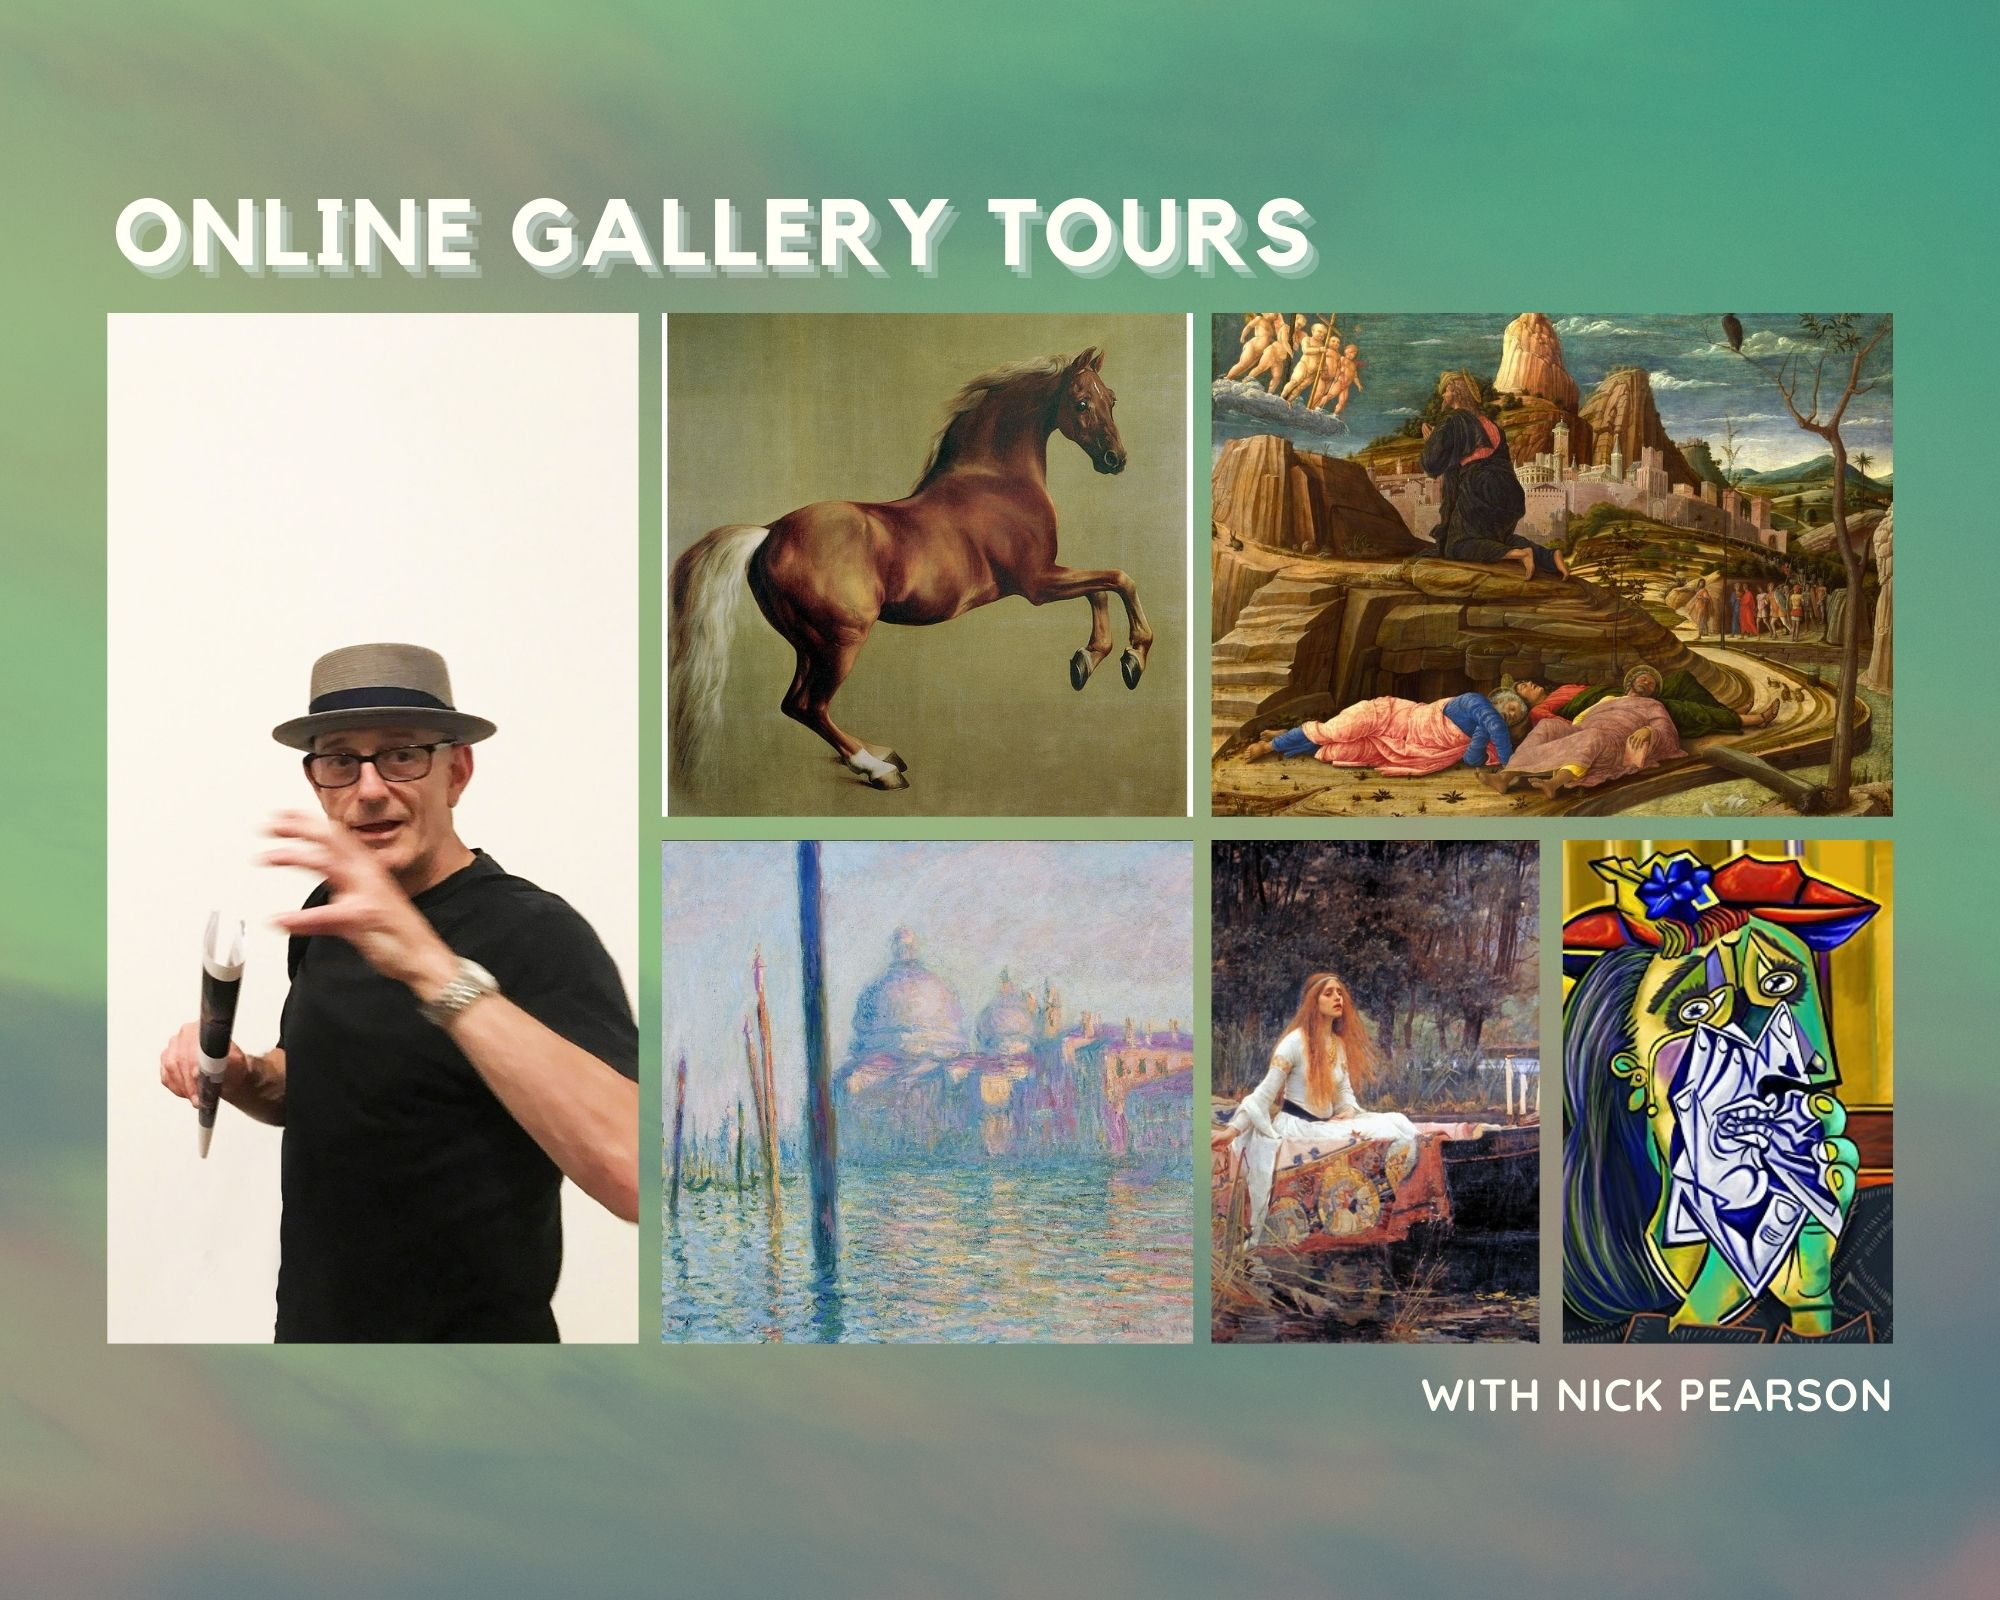 Online Gallery Tours in September with Nick Pearson